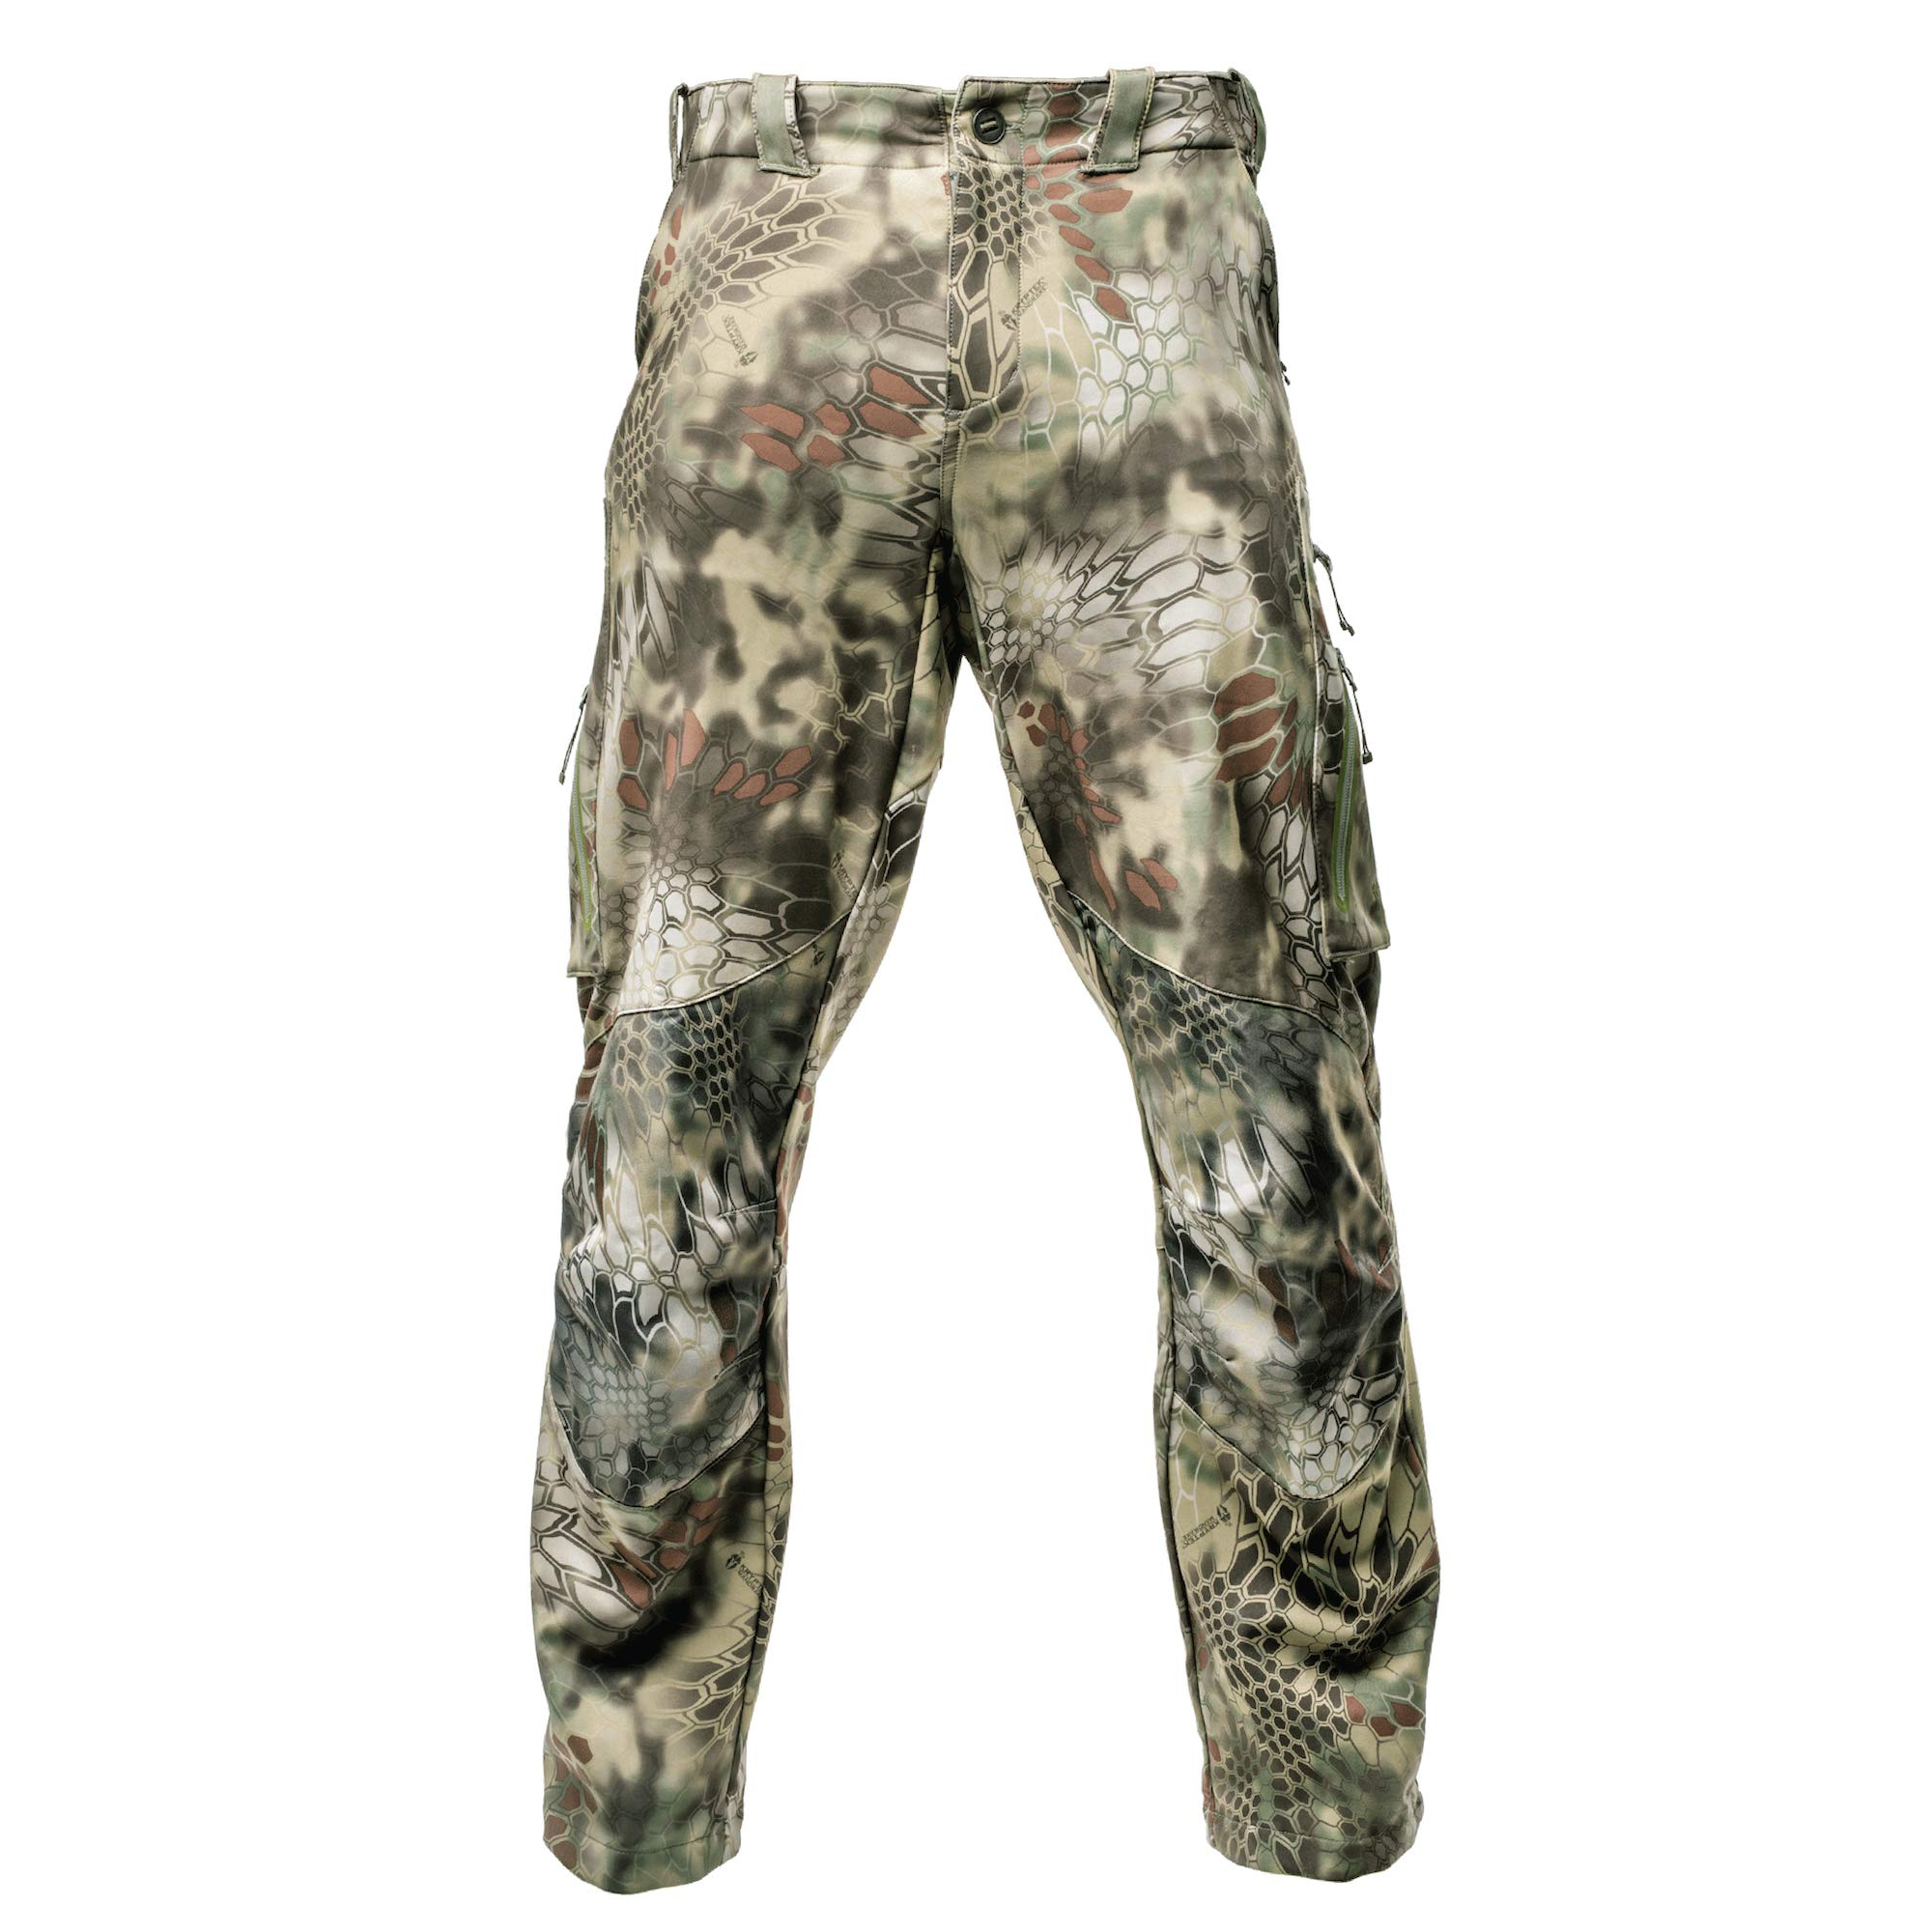 Kryptek Dalibor 3 Camo Hunting Pant (Dalibor Collection), Mandrake, 40X32 by Kryptek